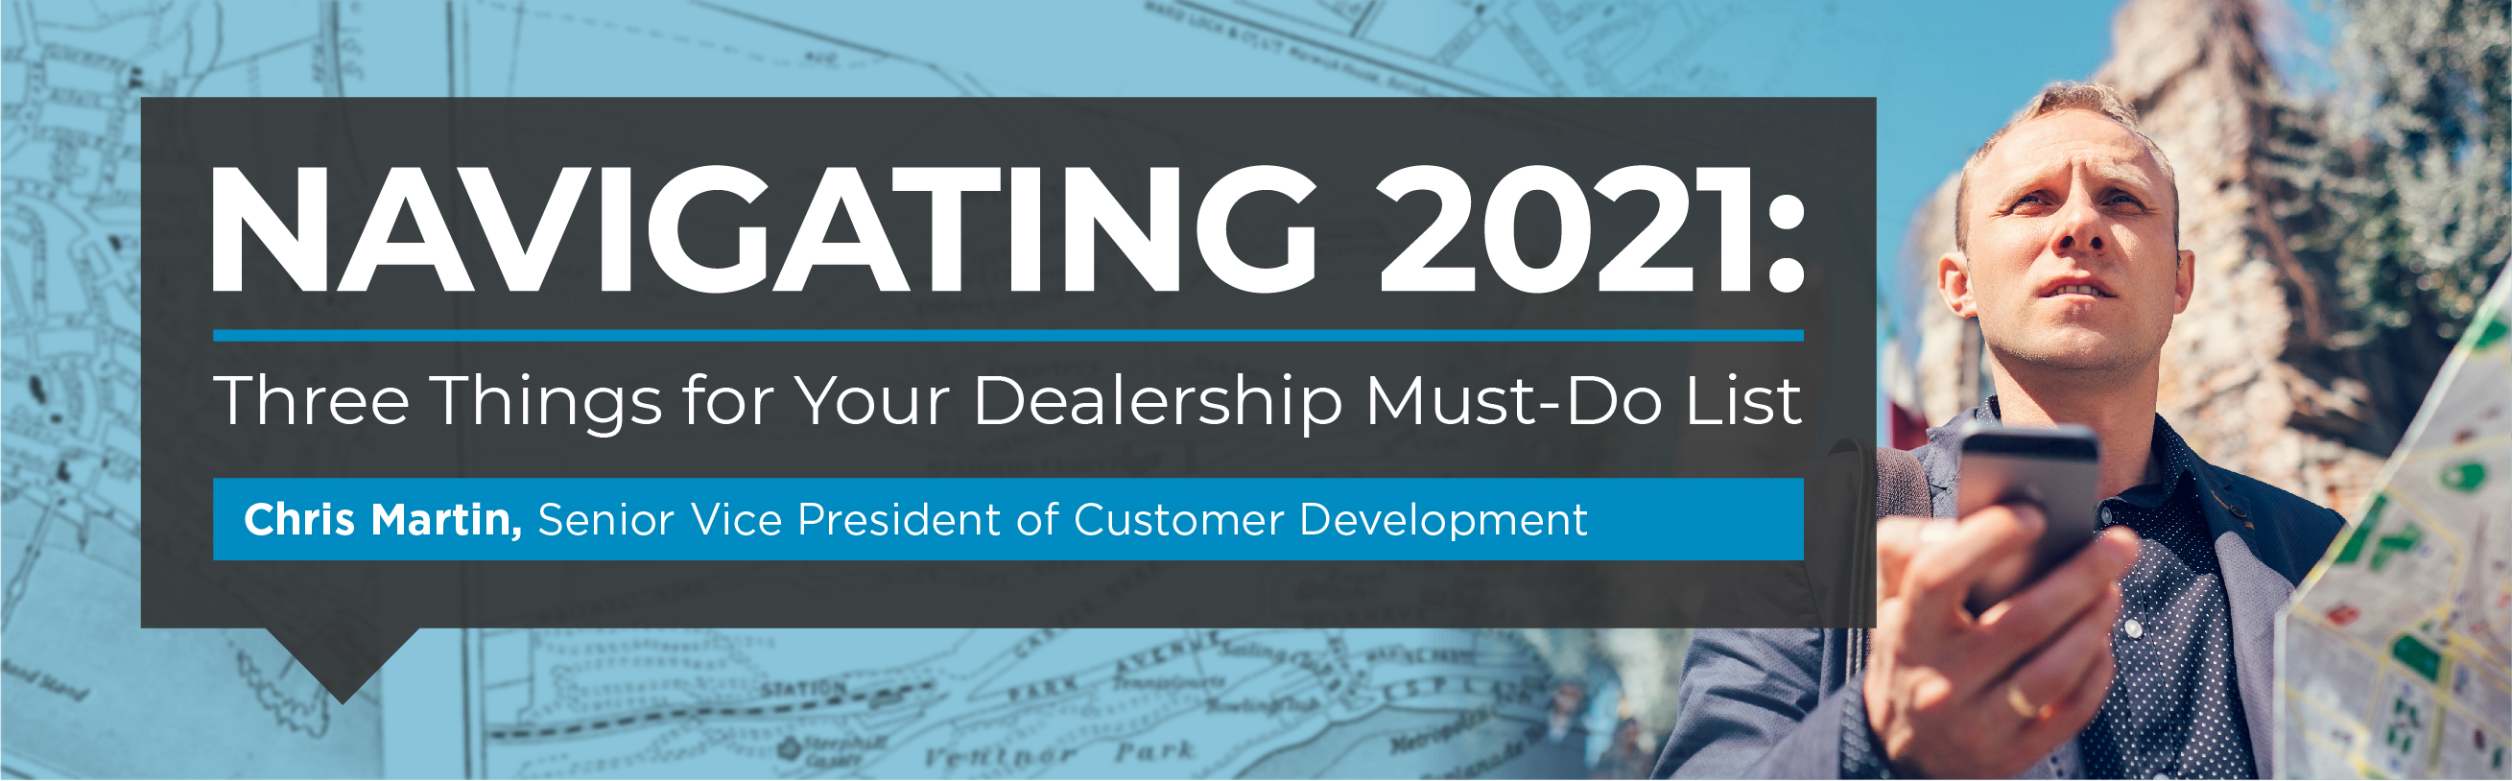 Navigating 2021: 3 Things for Your Dealership Must-Do List